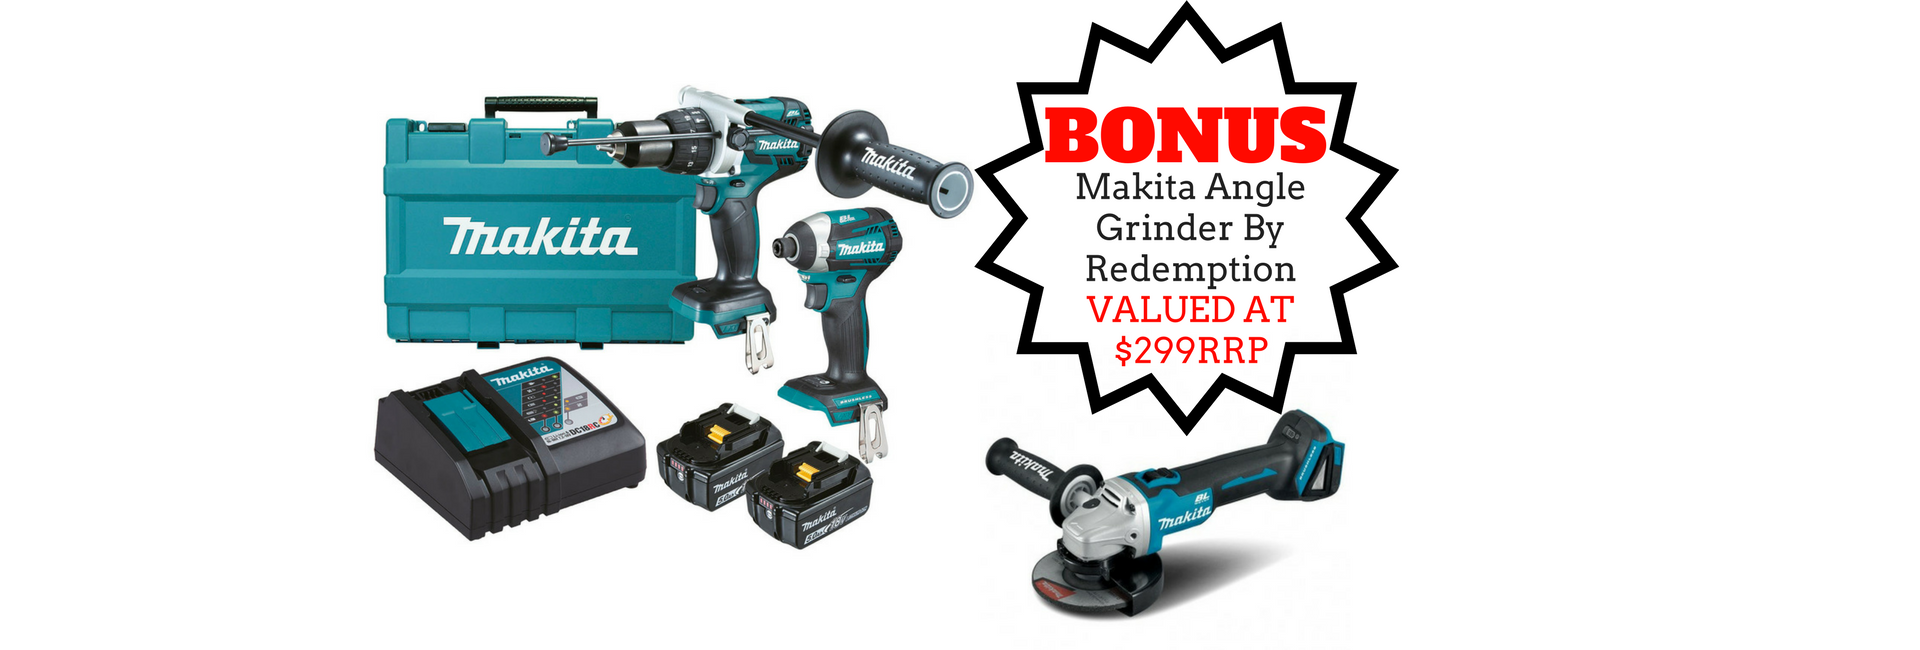 Makita 2 Piece Kit with Free Grinder